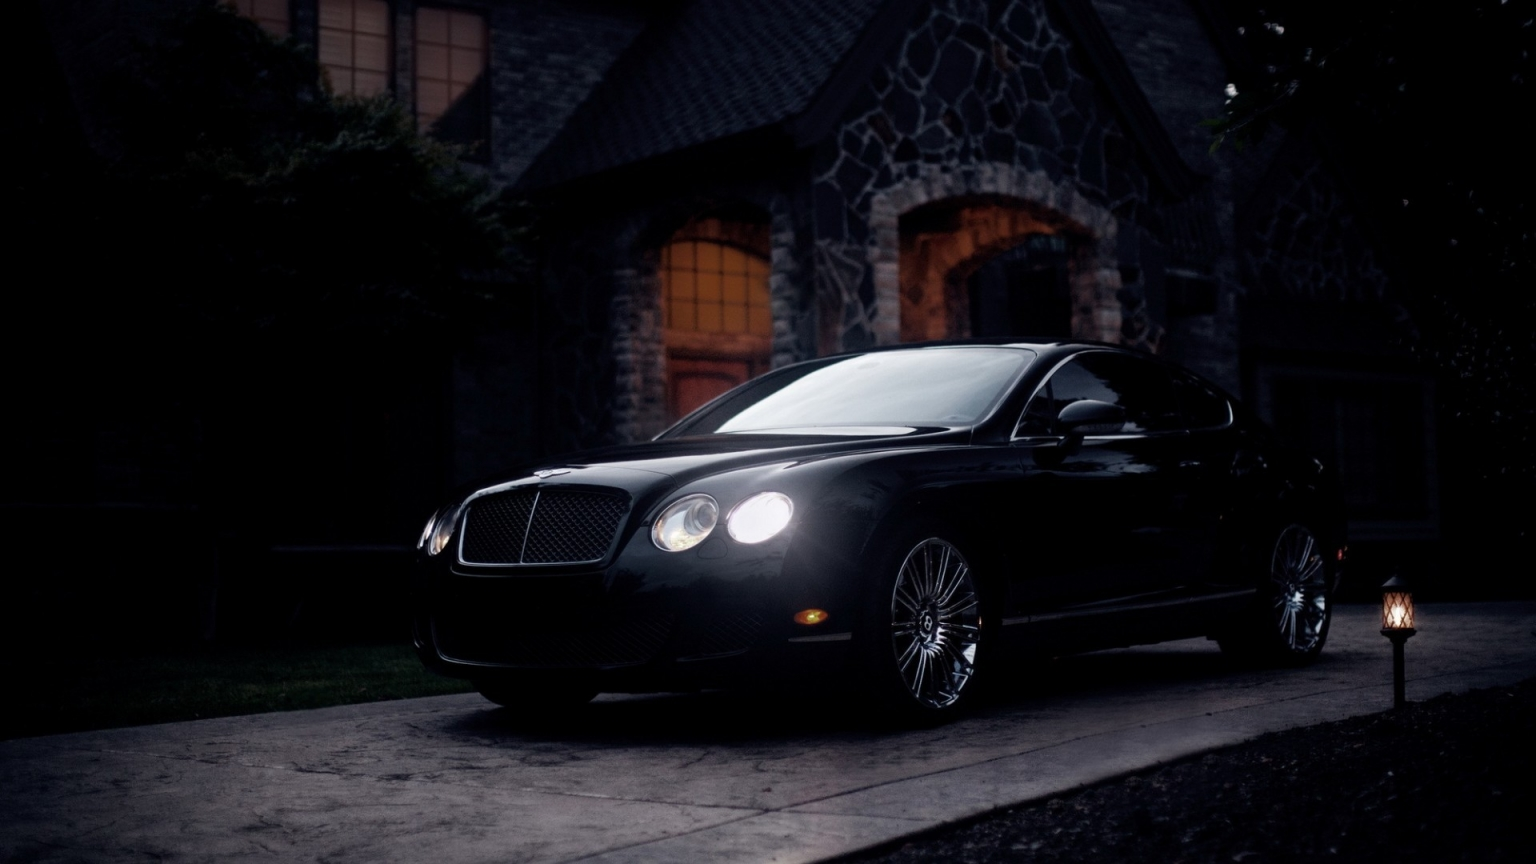 Black Bentley Continental GT for 1536 x 864 HDTV resolution